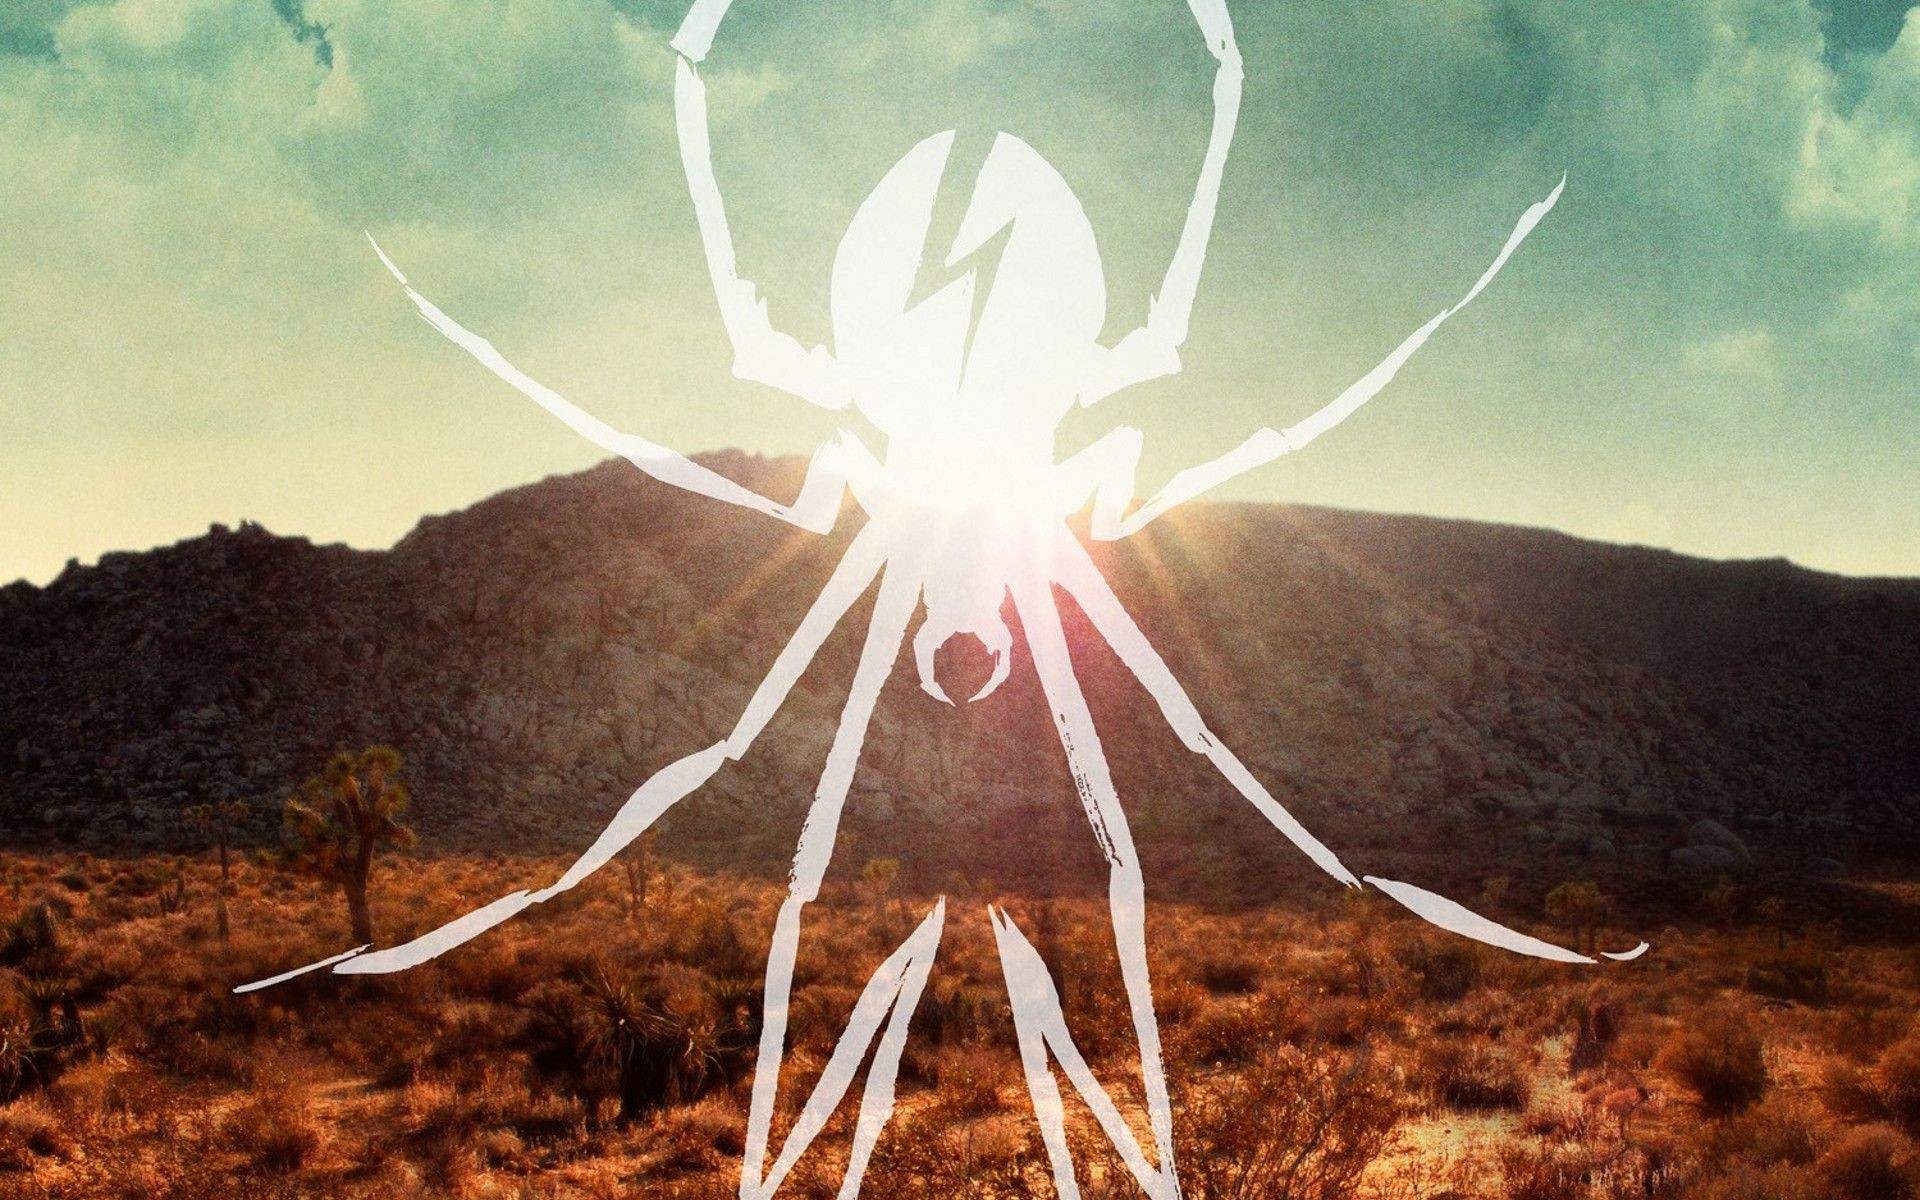 Wallpapers to background — My Chemical Romance – Danger Days .